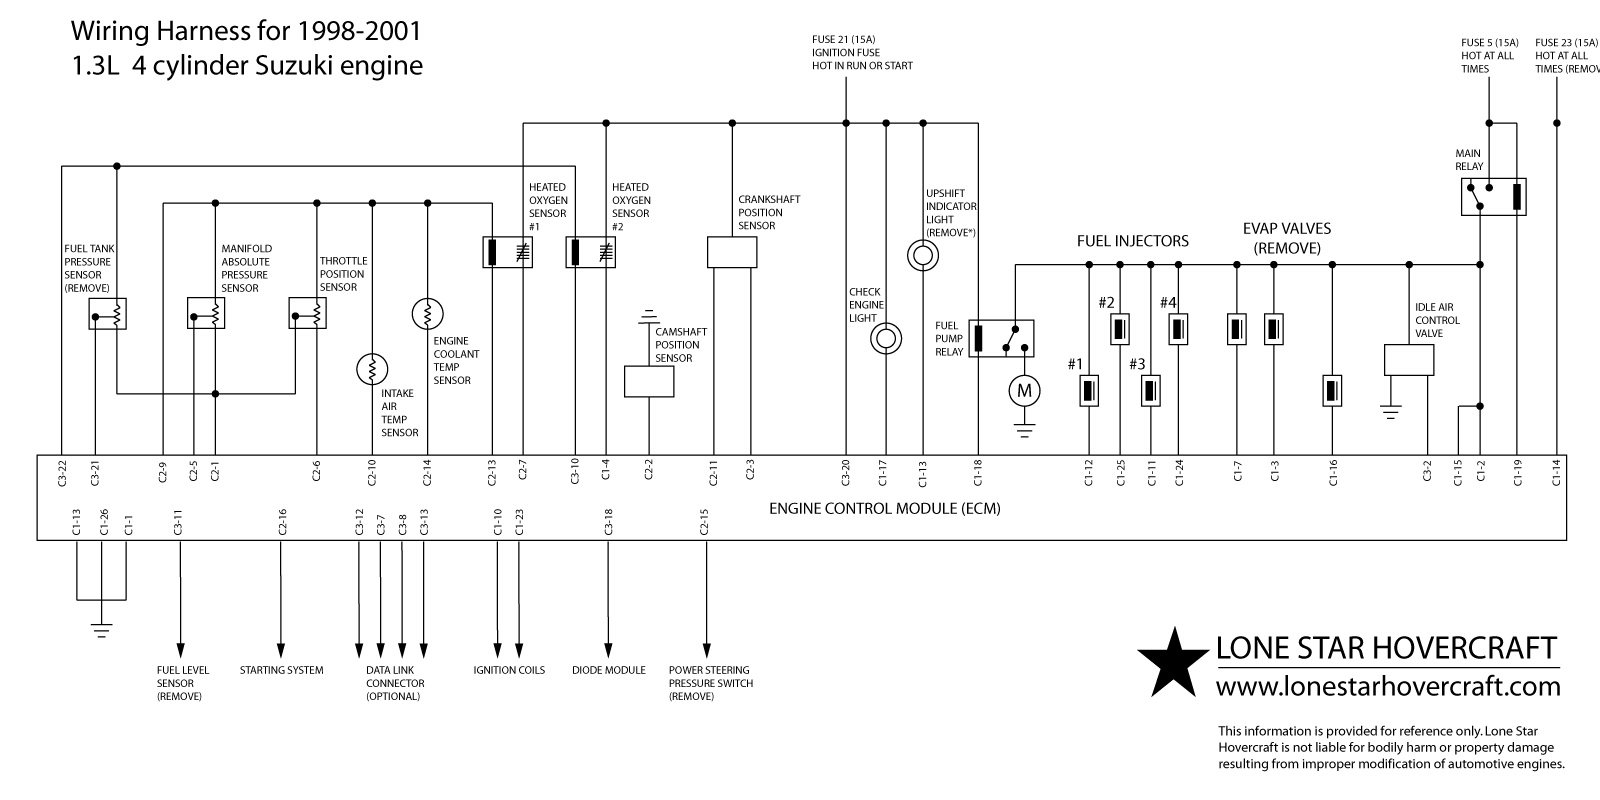 ecm motor wiring diagram ecm image wiring diagram geo suzuki wiring on ecm motor wiring diagram